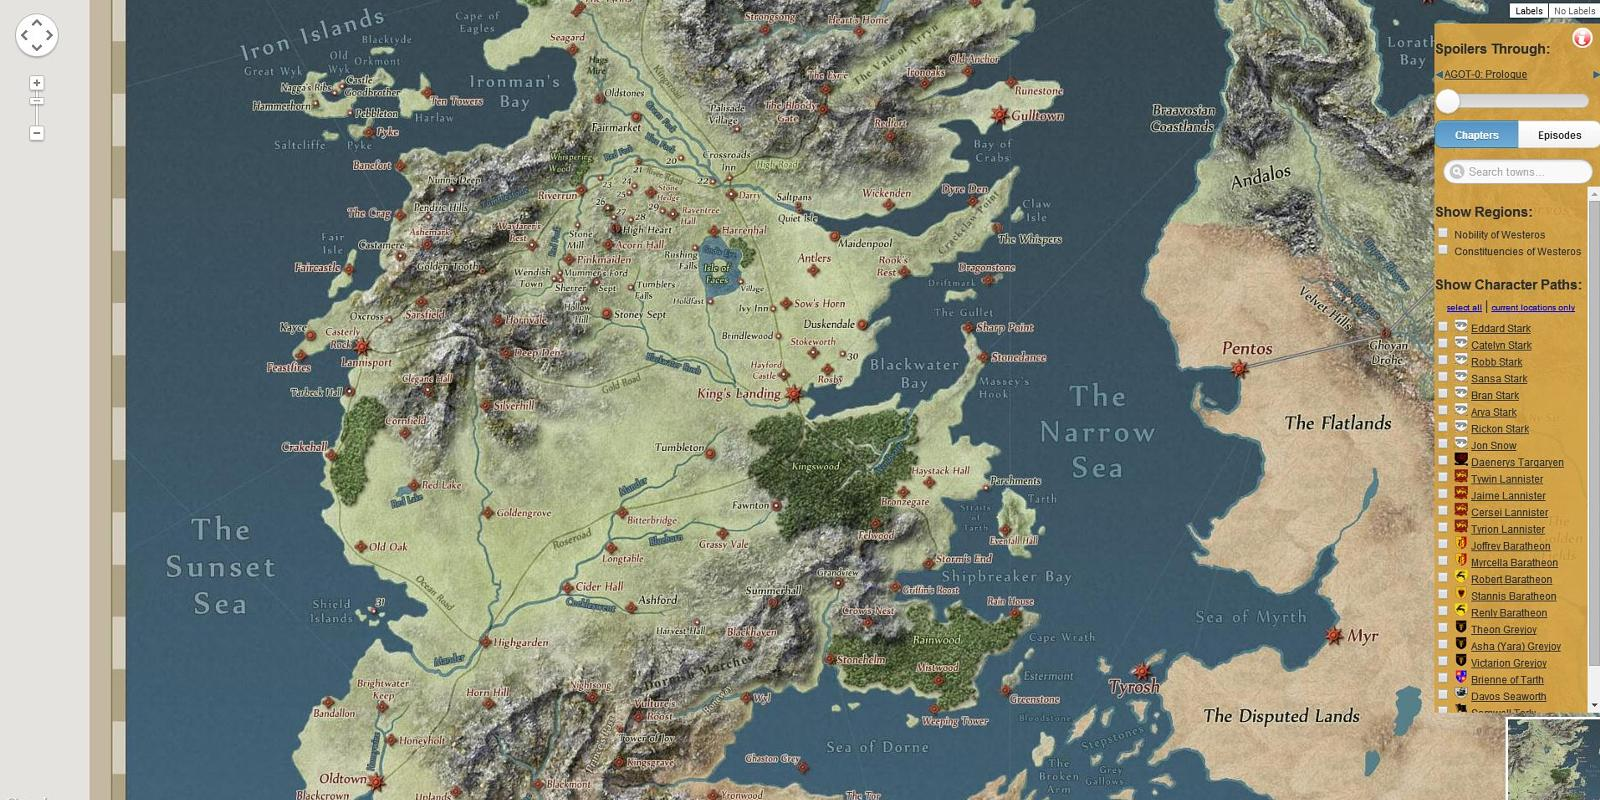 landscape_fun-game-of-thrones-interactive-map Game Of Thrones City Map on empire city map, regular show city map, far cry 4 city map, assassin's creed unity city map, eberron city map, far cry 3 city map, warhammer city map, city road map, the last of us city map, watch dogs city map, king of thrones map, guild wars 2 city map, hell's kitchen city map, crown of thrones map, destiny city map, westeros city map, resurrection city map, luther city map, family guy city map, ice and fire world map,